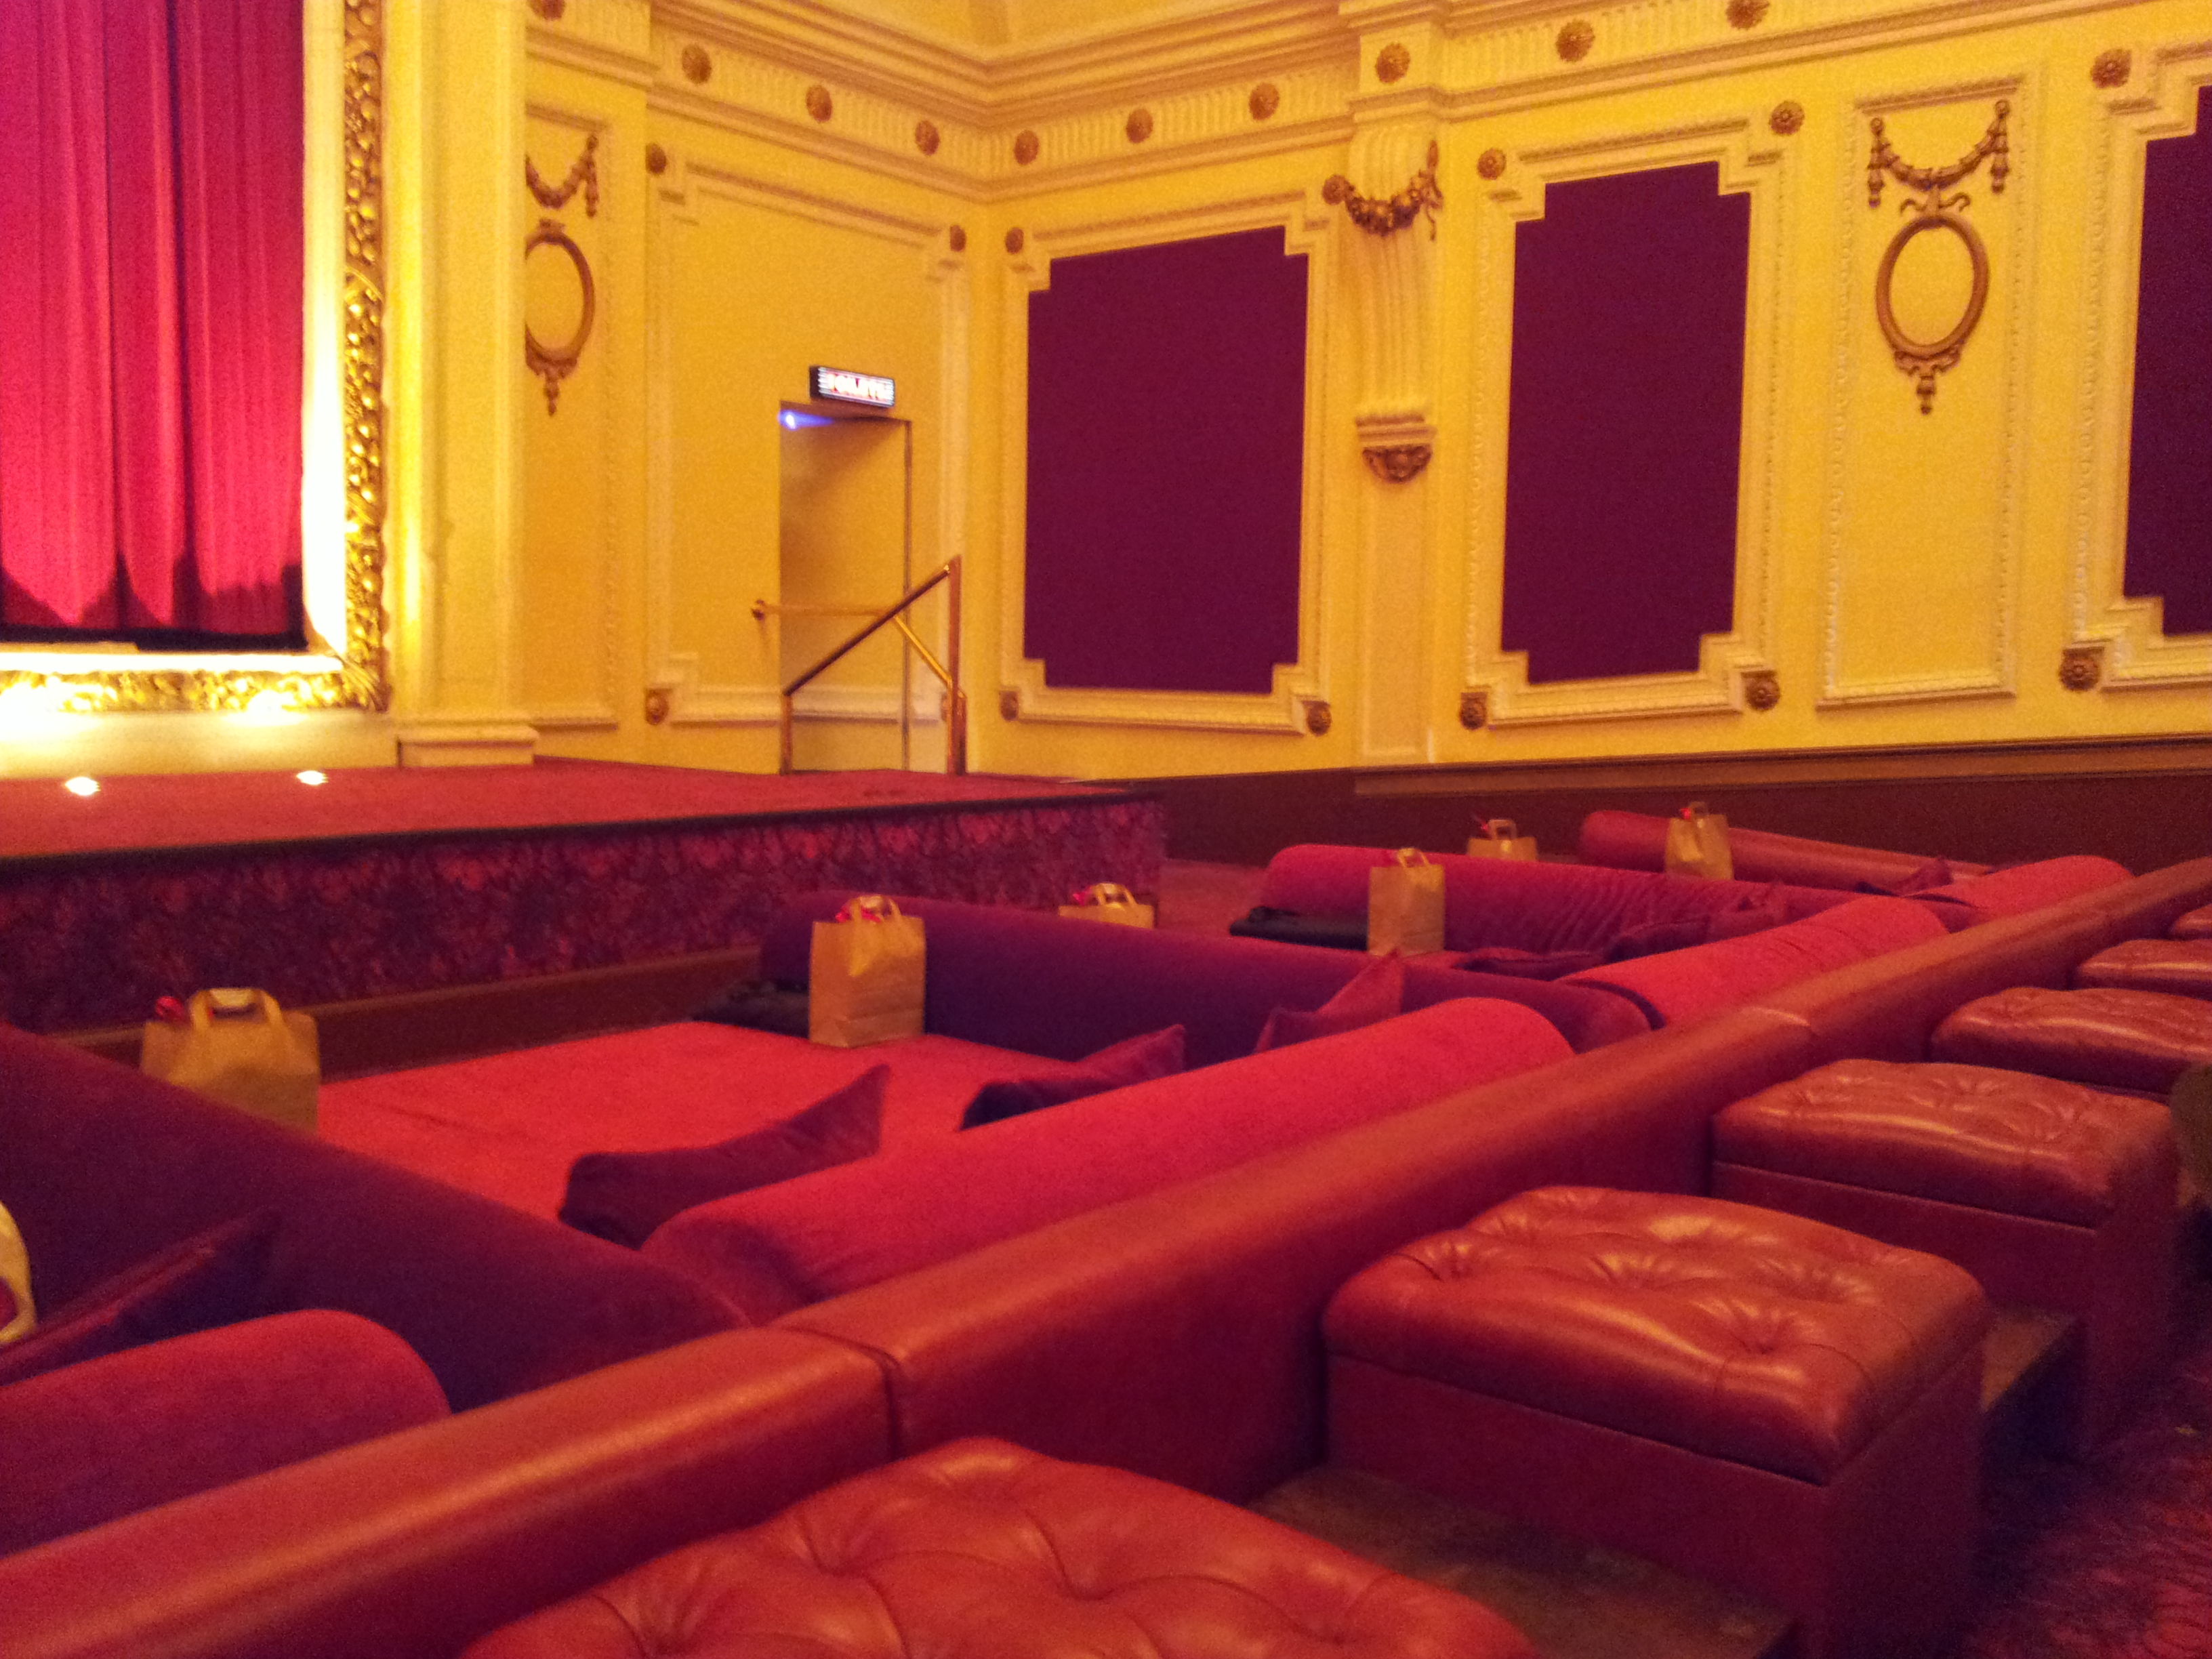 east london sofa cinema foam mattress sleeper day out in notting hill and electric new yorker